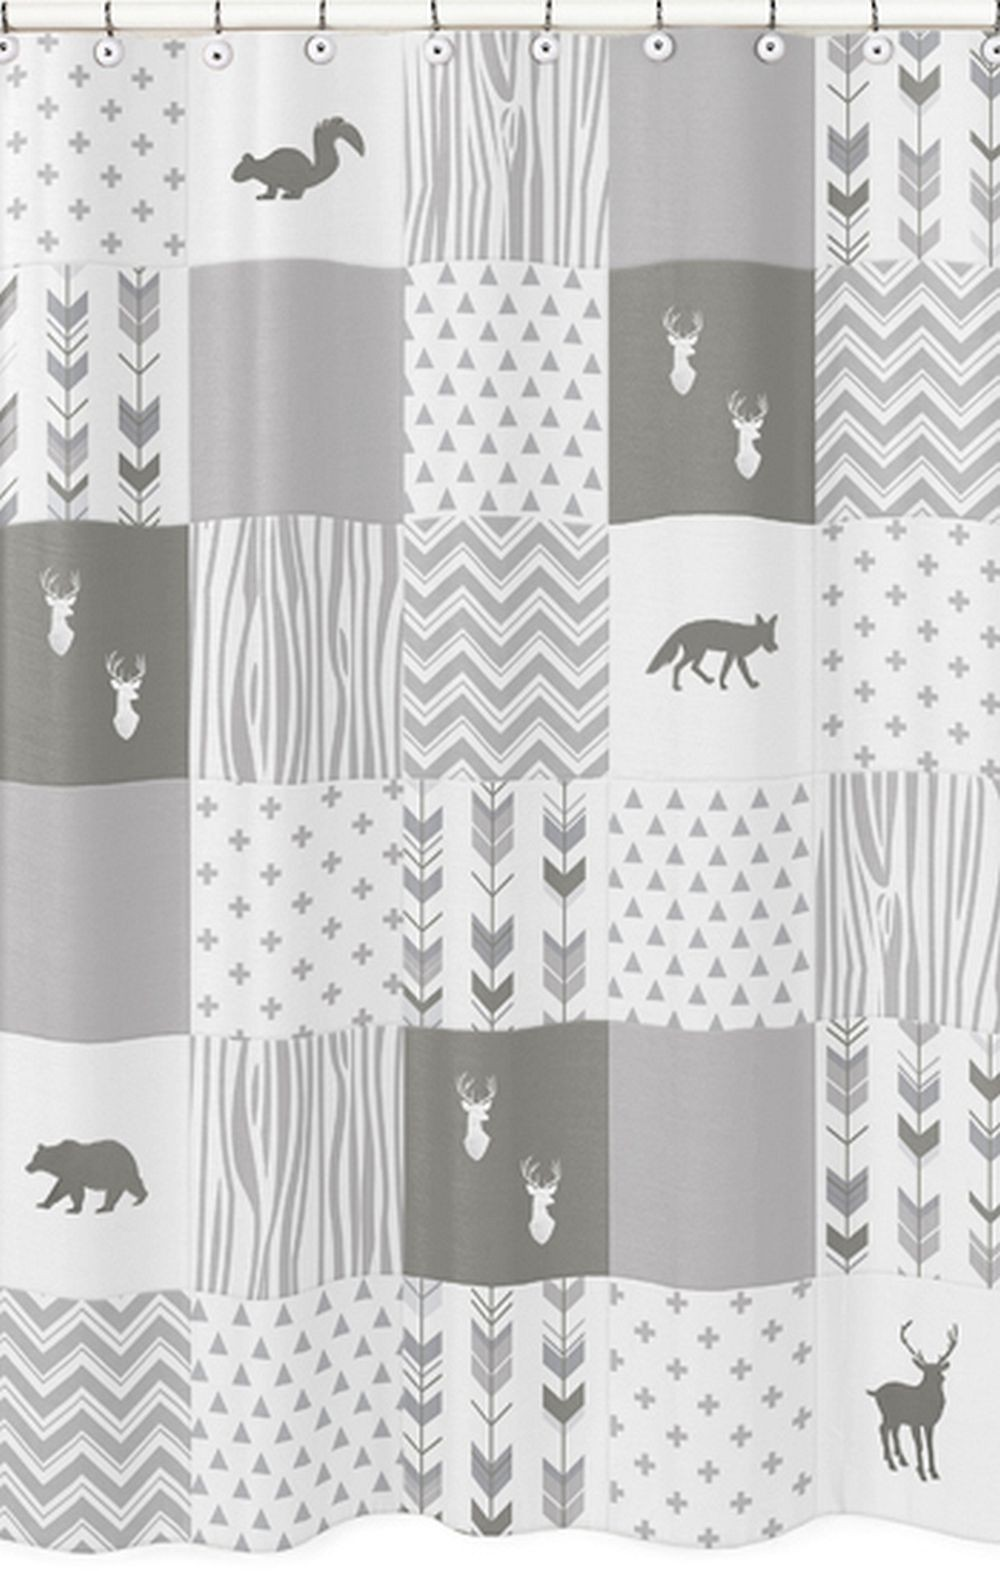 Woodsy Grey & White Shower Curtain - Blanket Warehouse